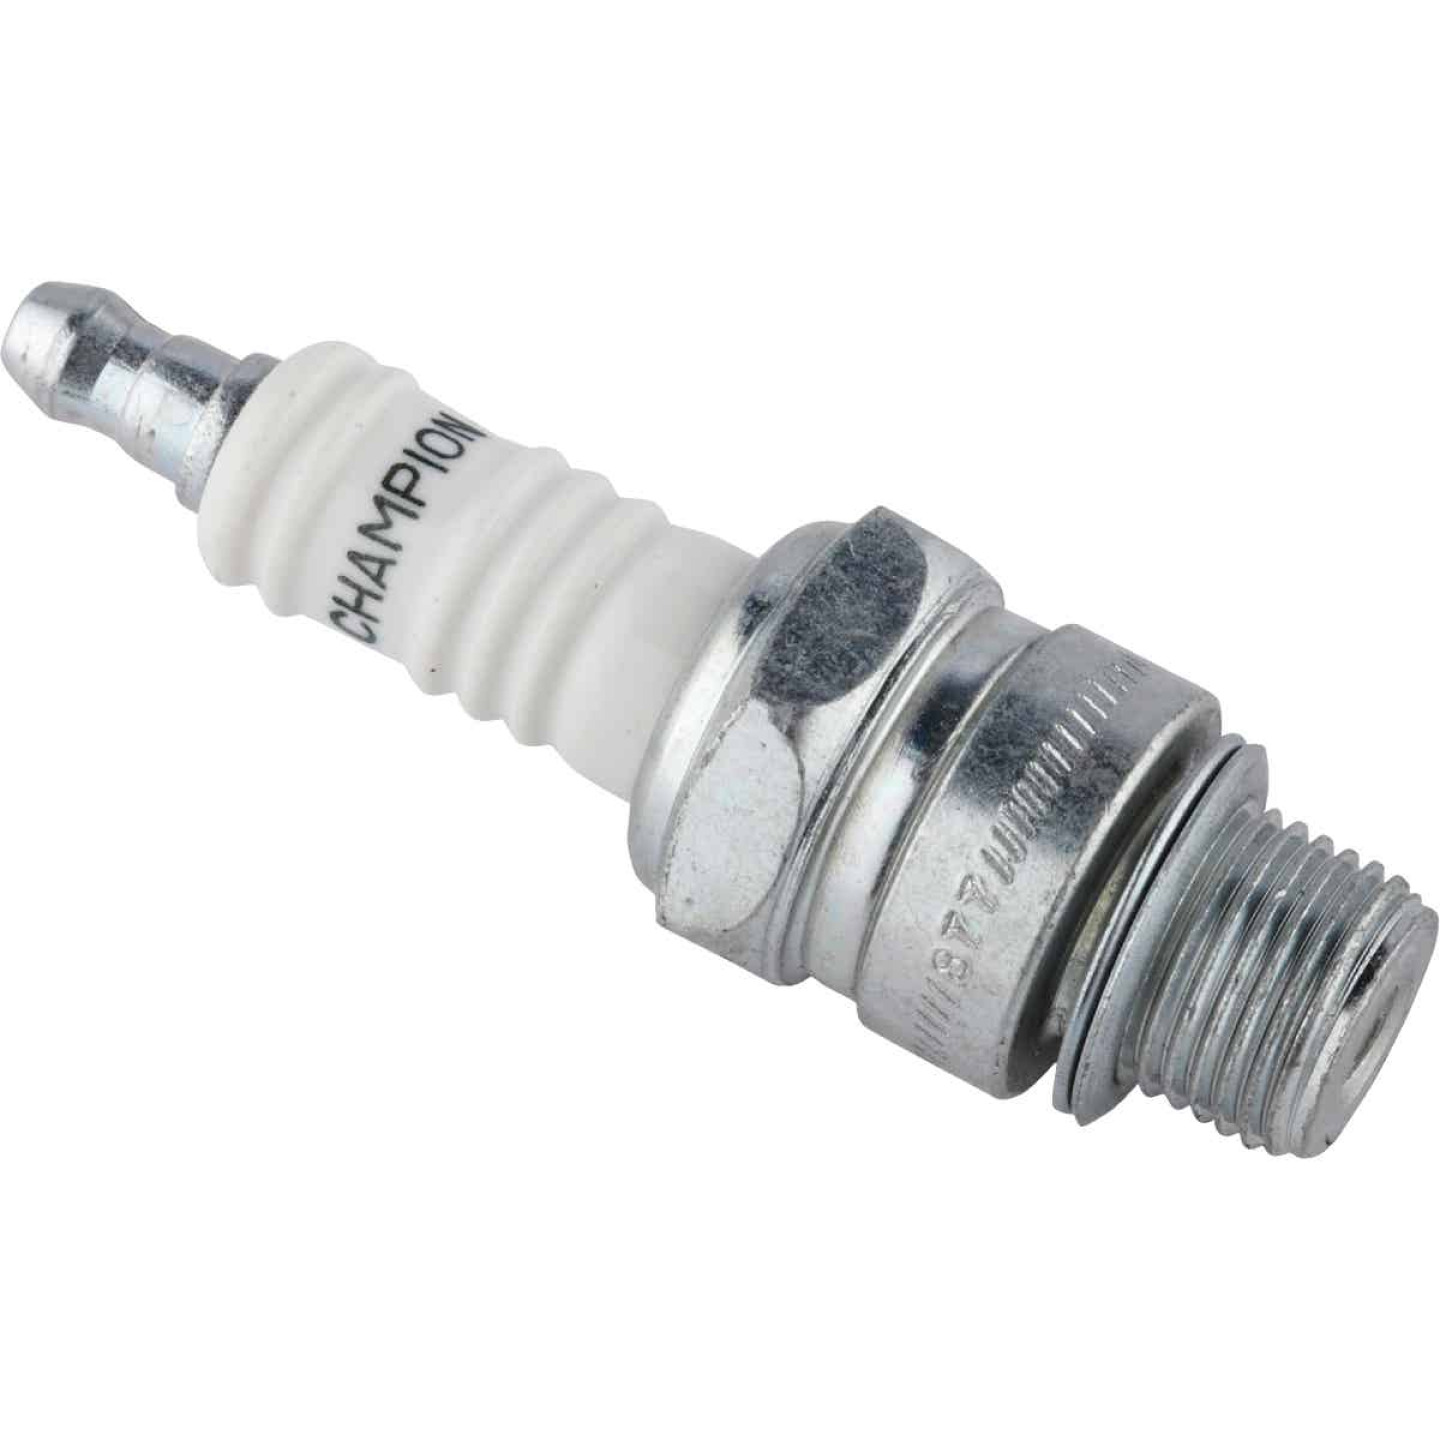 Champion L76V Copper Plus Marine Spark Plug Image 1